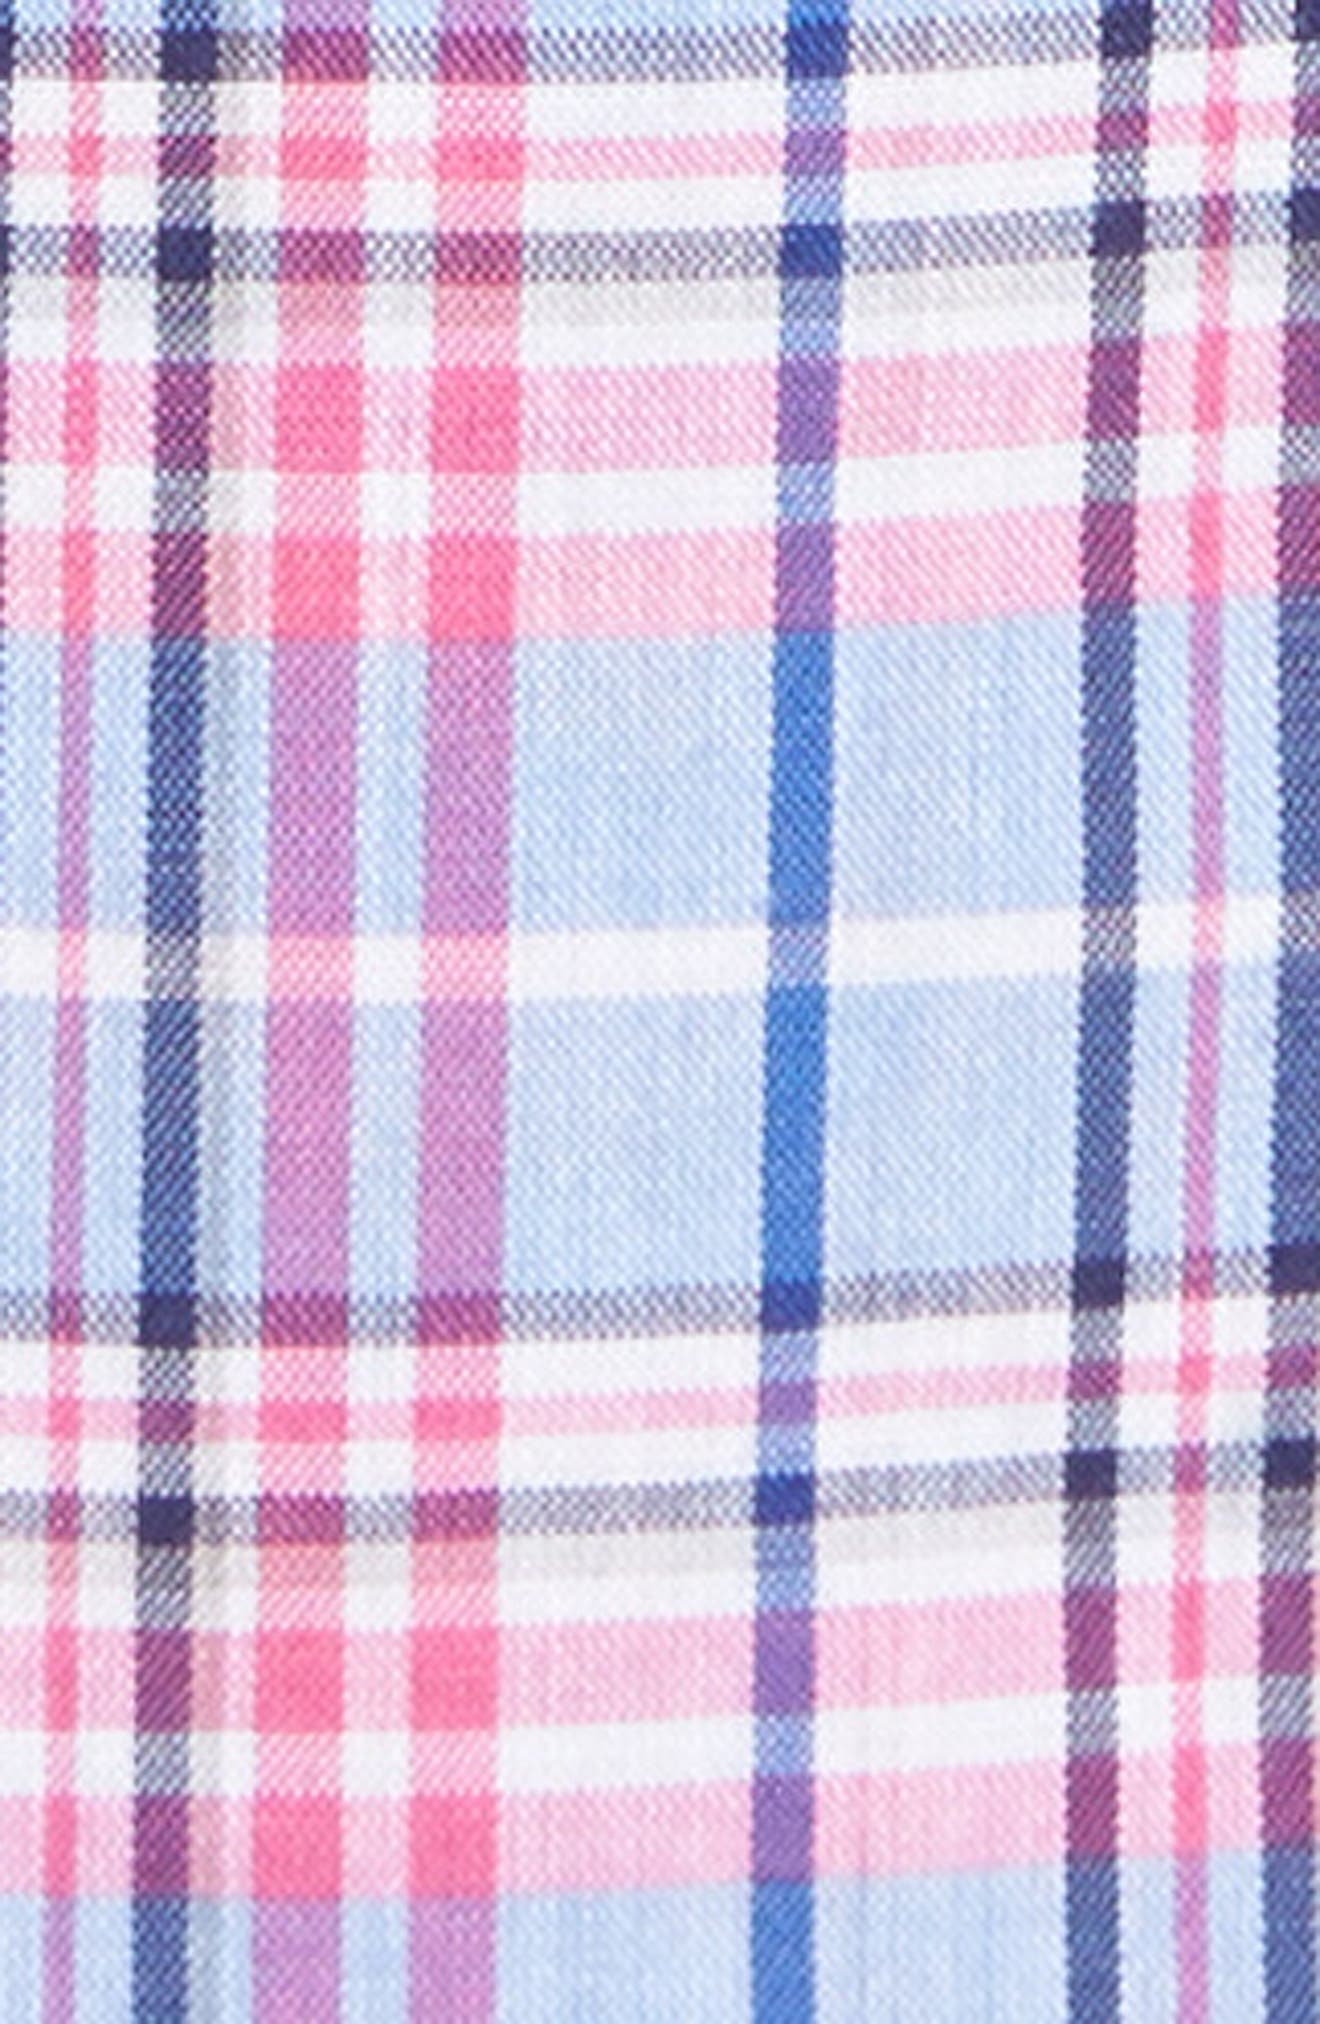 Summerweight Slim Fit Plaid Sport Shirt,                             Alternate thumbnail 5, color,                             Basswood Plaid - Pink Rocket